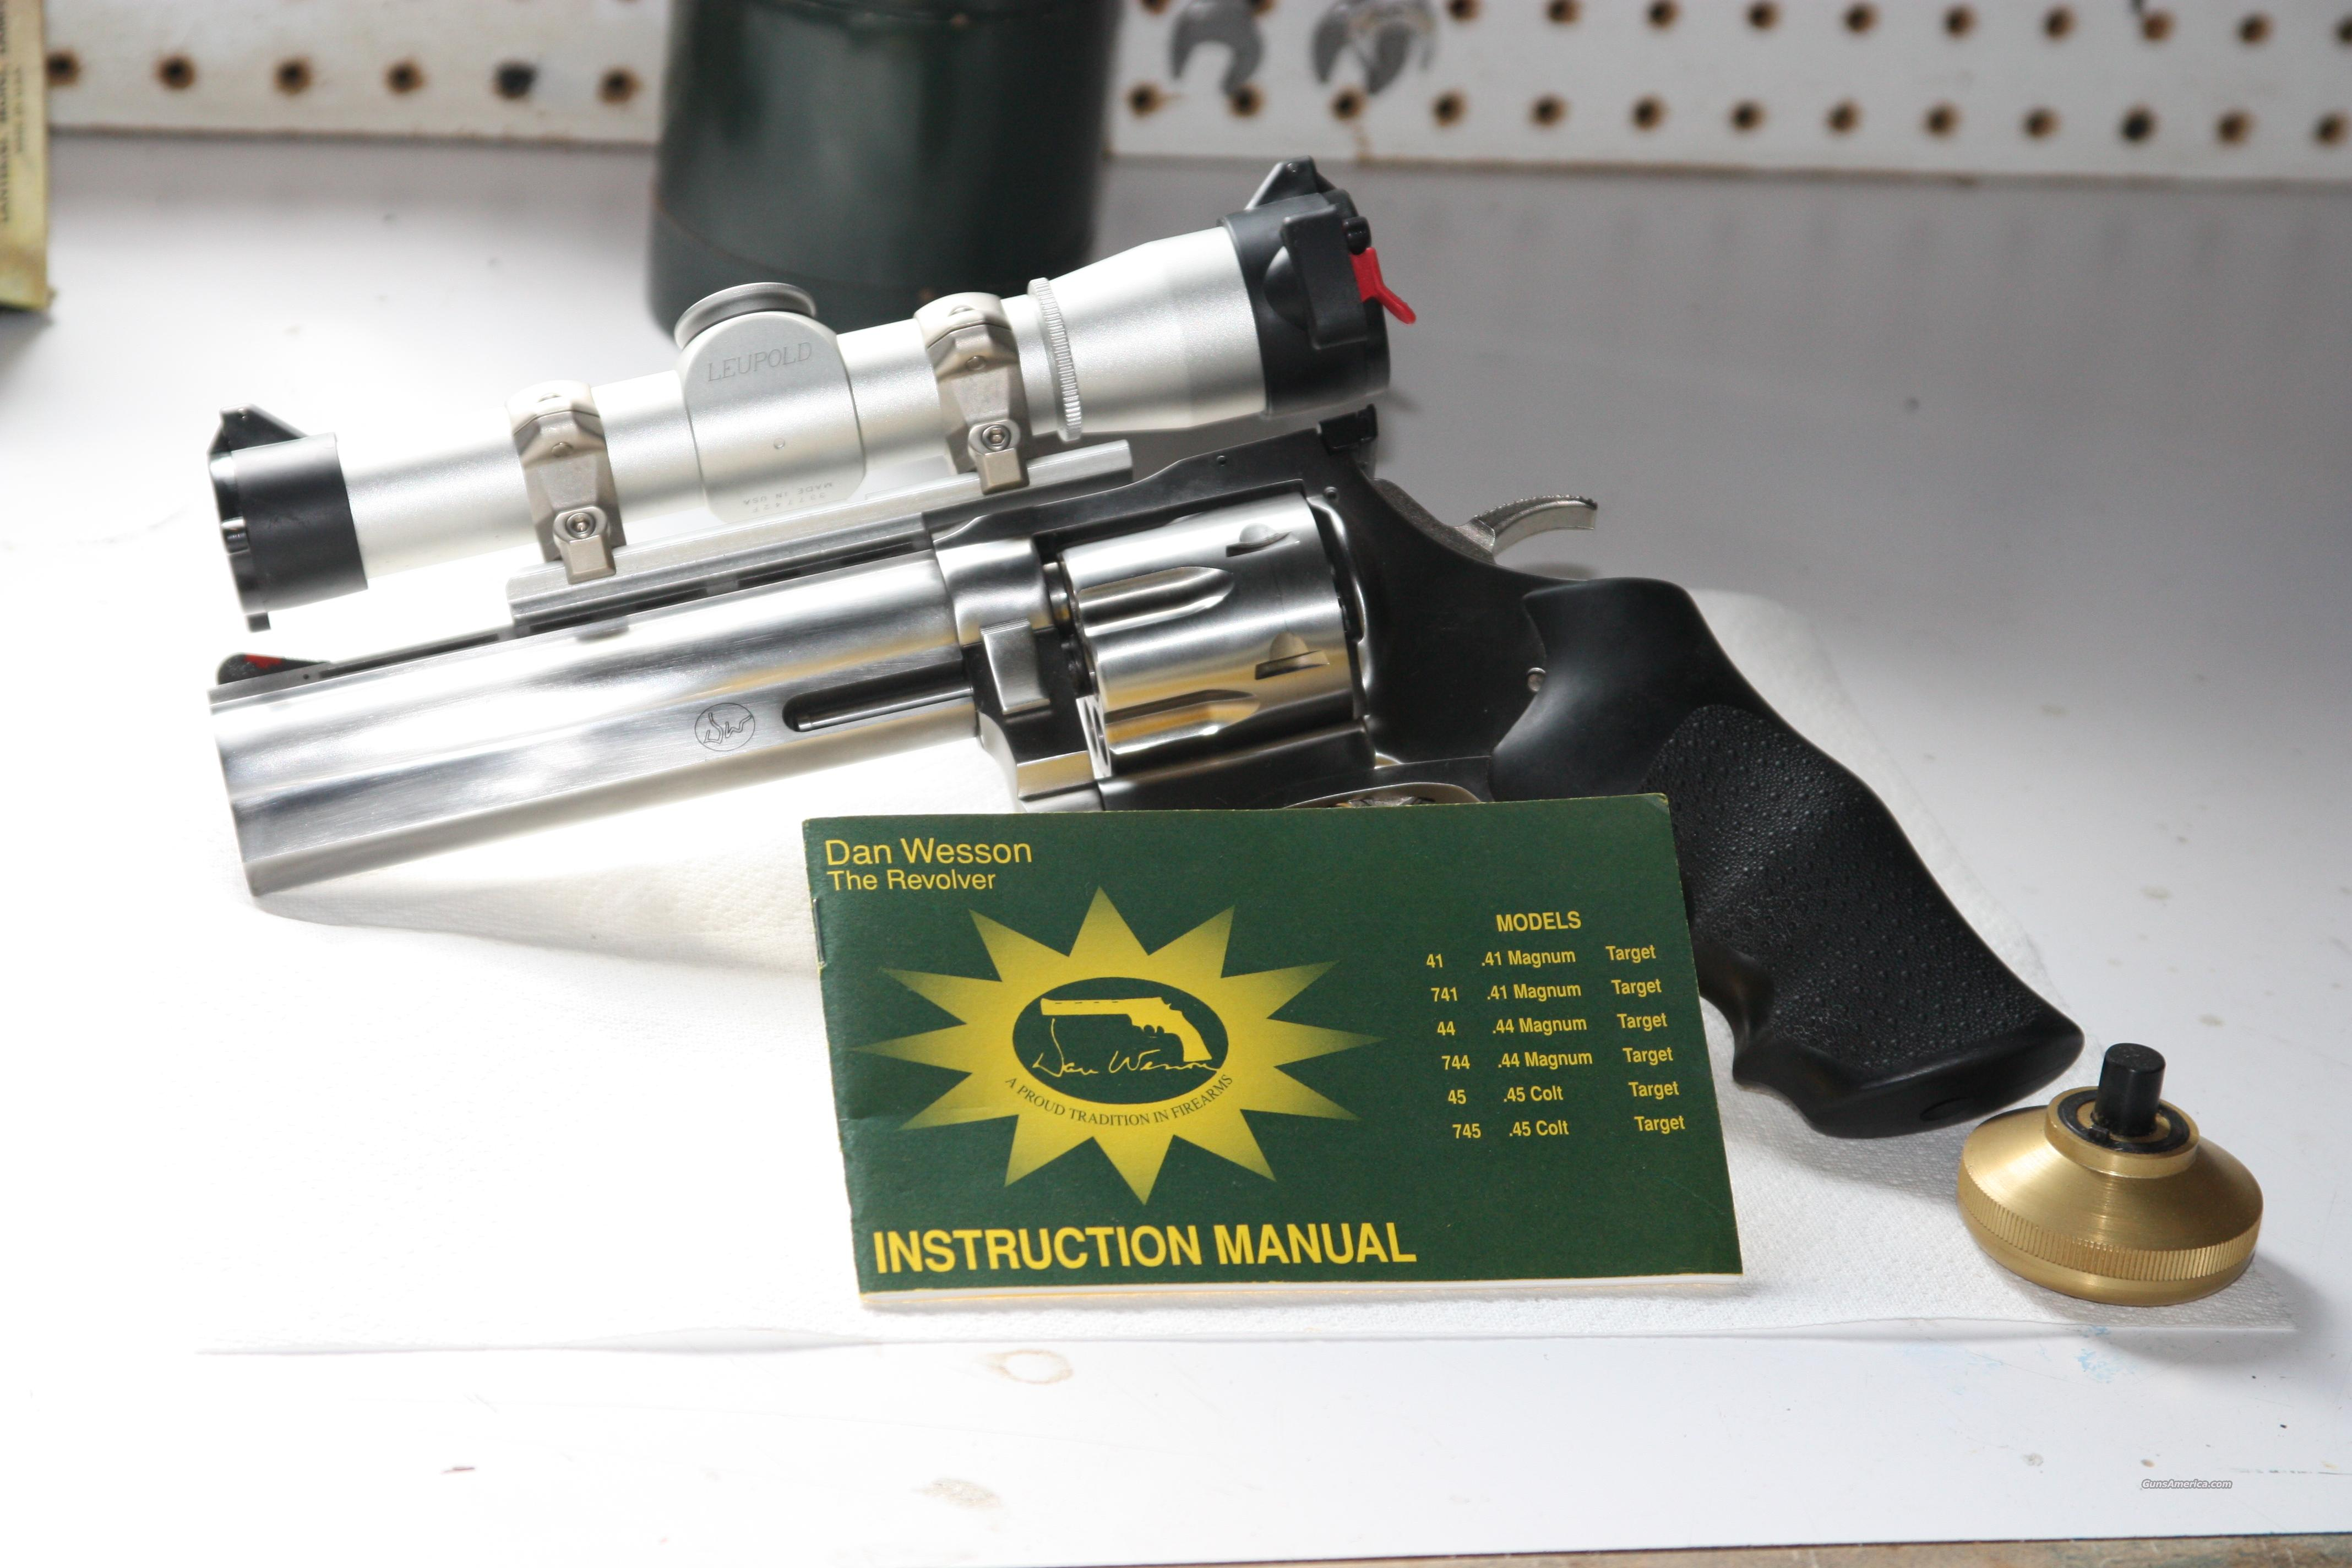 Dan Wesson stainless 744 VH with scope  Guns > Pistols > Dan Wesson Pistols/Revolvers > Revolvers